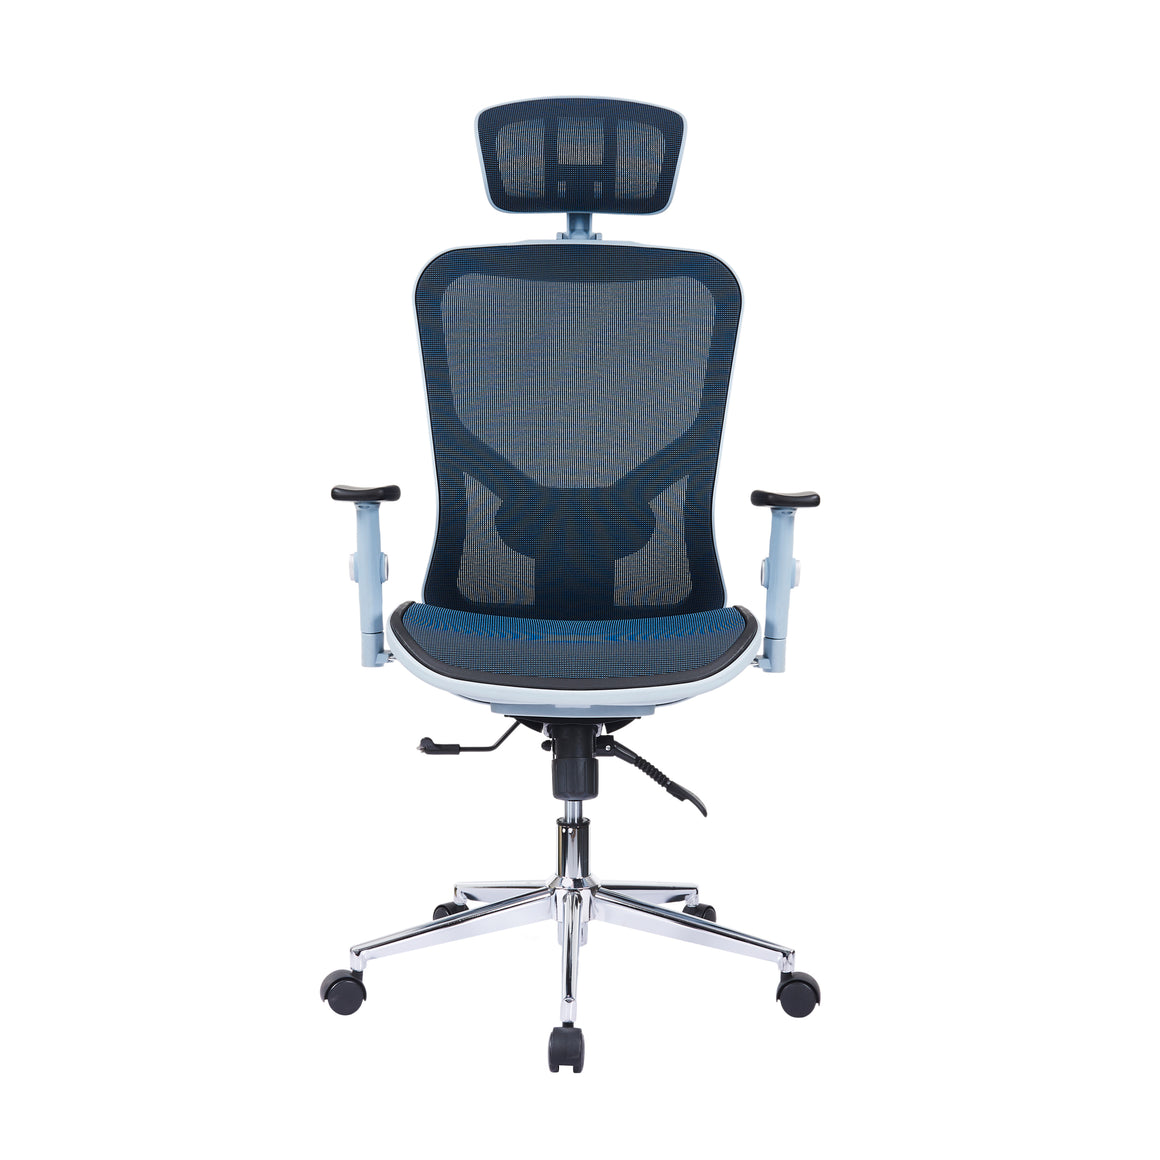 High Back Executive Mesh Office Chair with Arms, Headrest and Lumbar Support